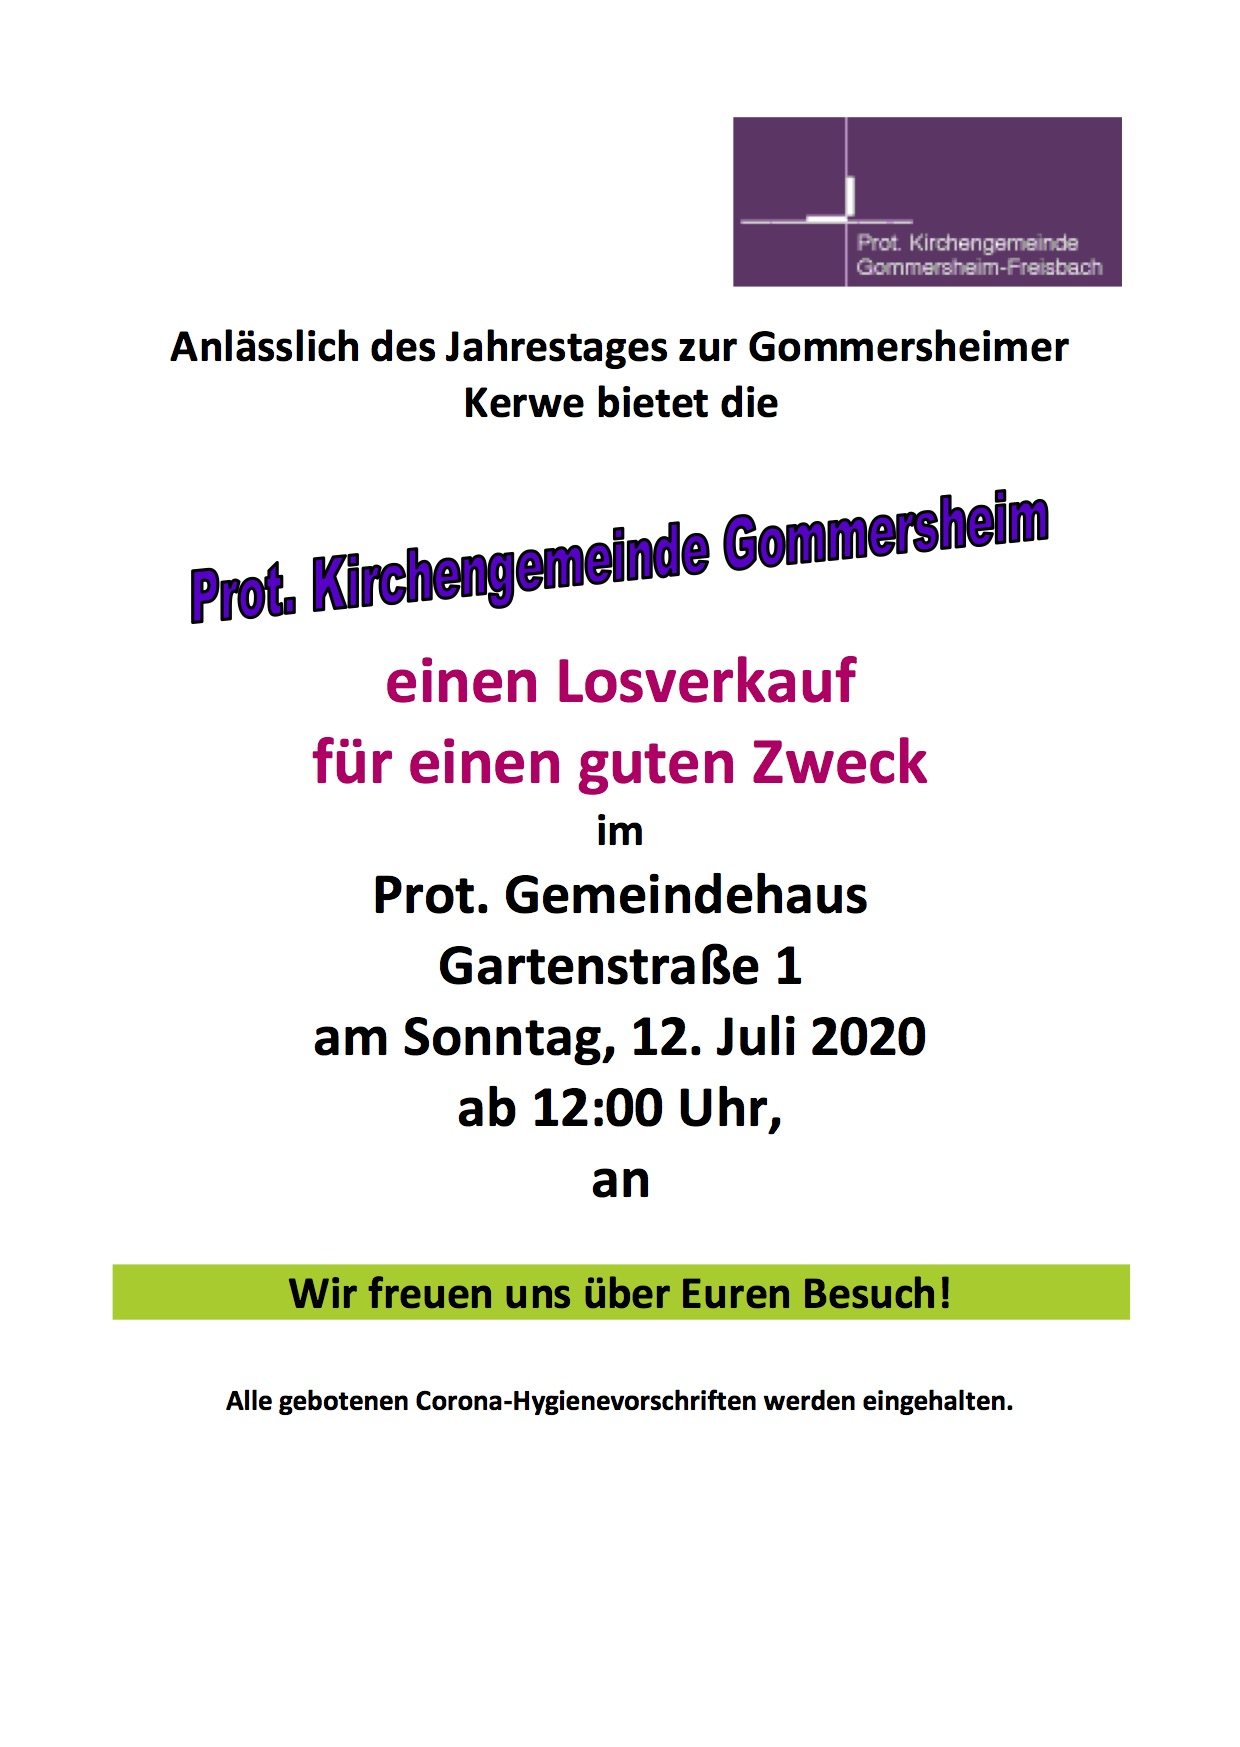 200702_Flyer Prot. Kircheng.